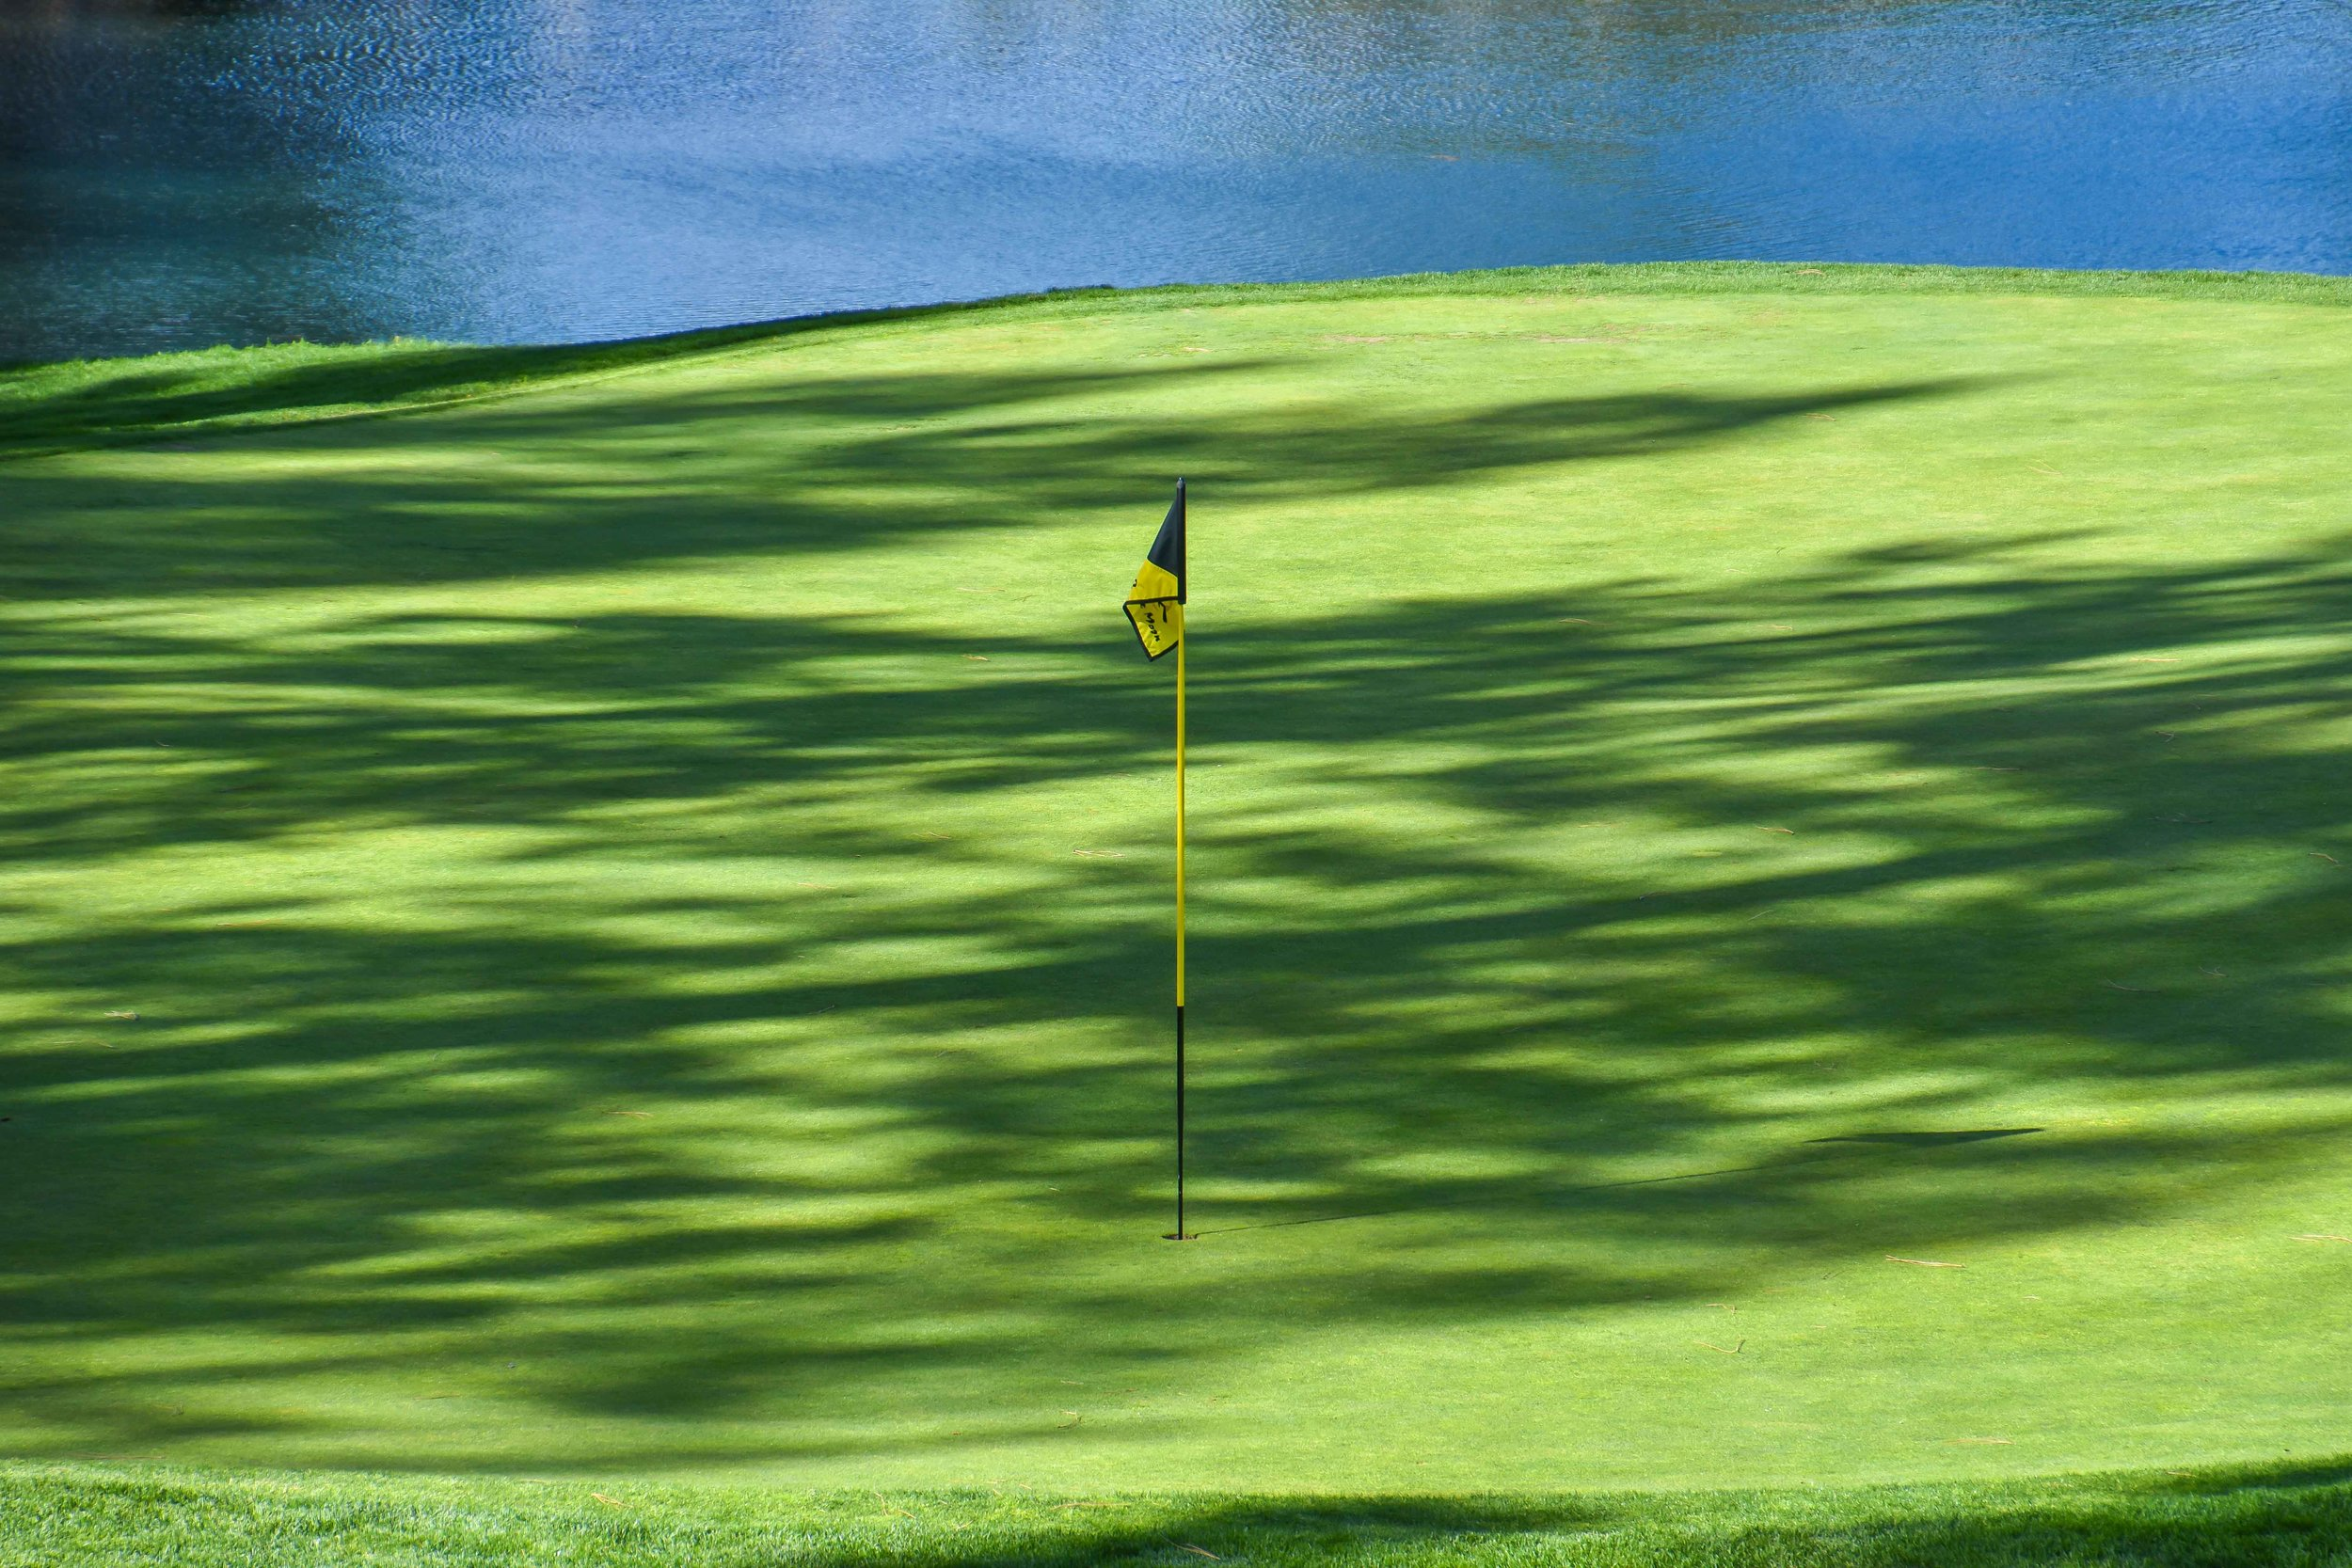 Shadows fall on the 16th green at Coyote Moon.